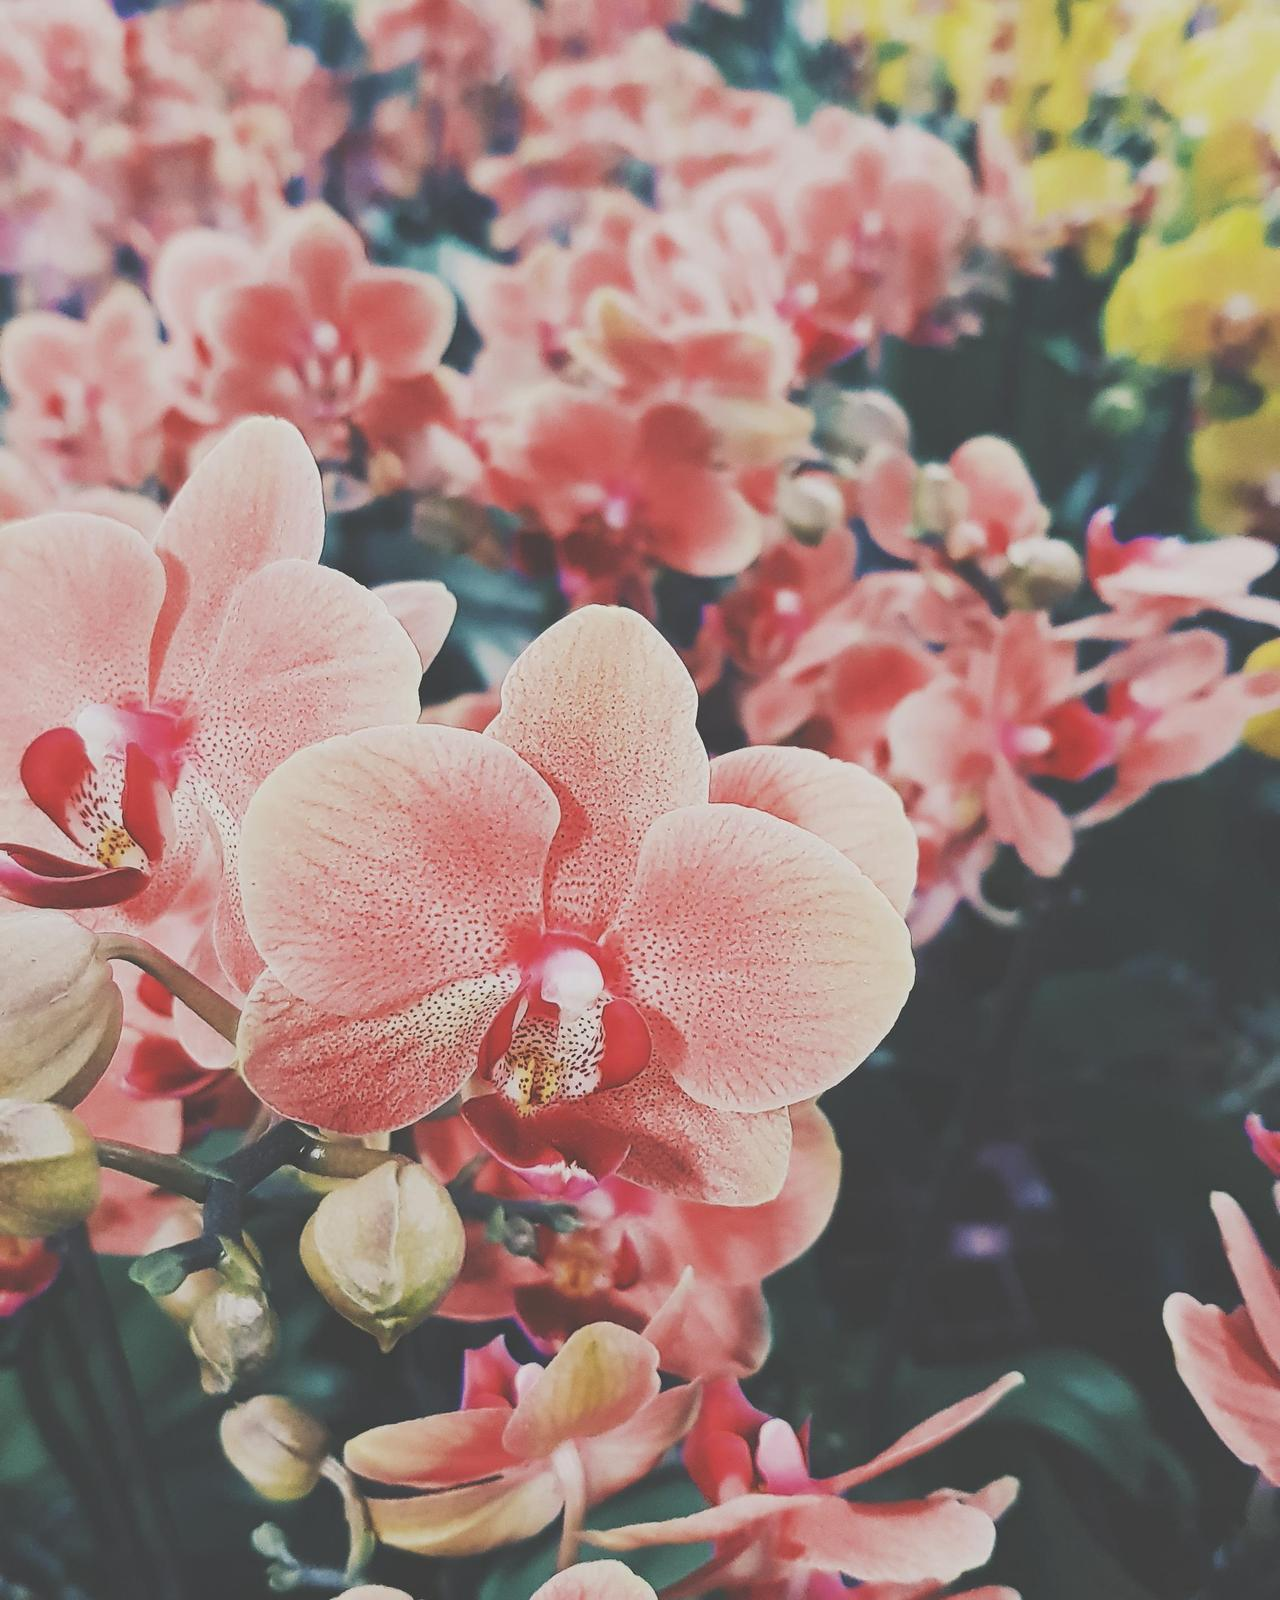 Aesthetic Flowers Wallpapers - Wallpaper Cave